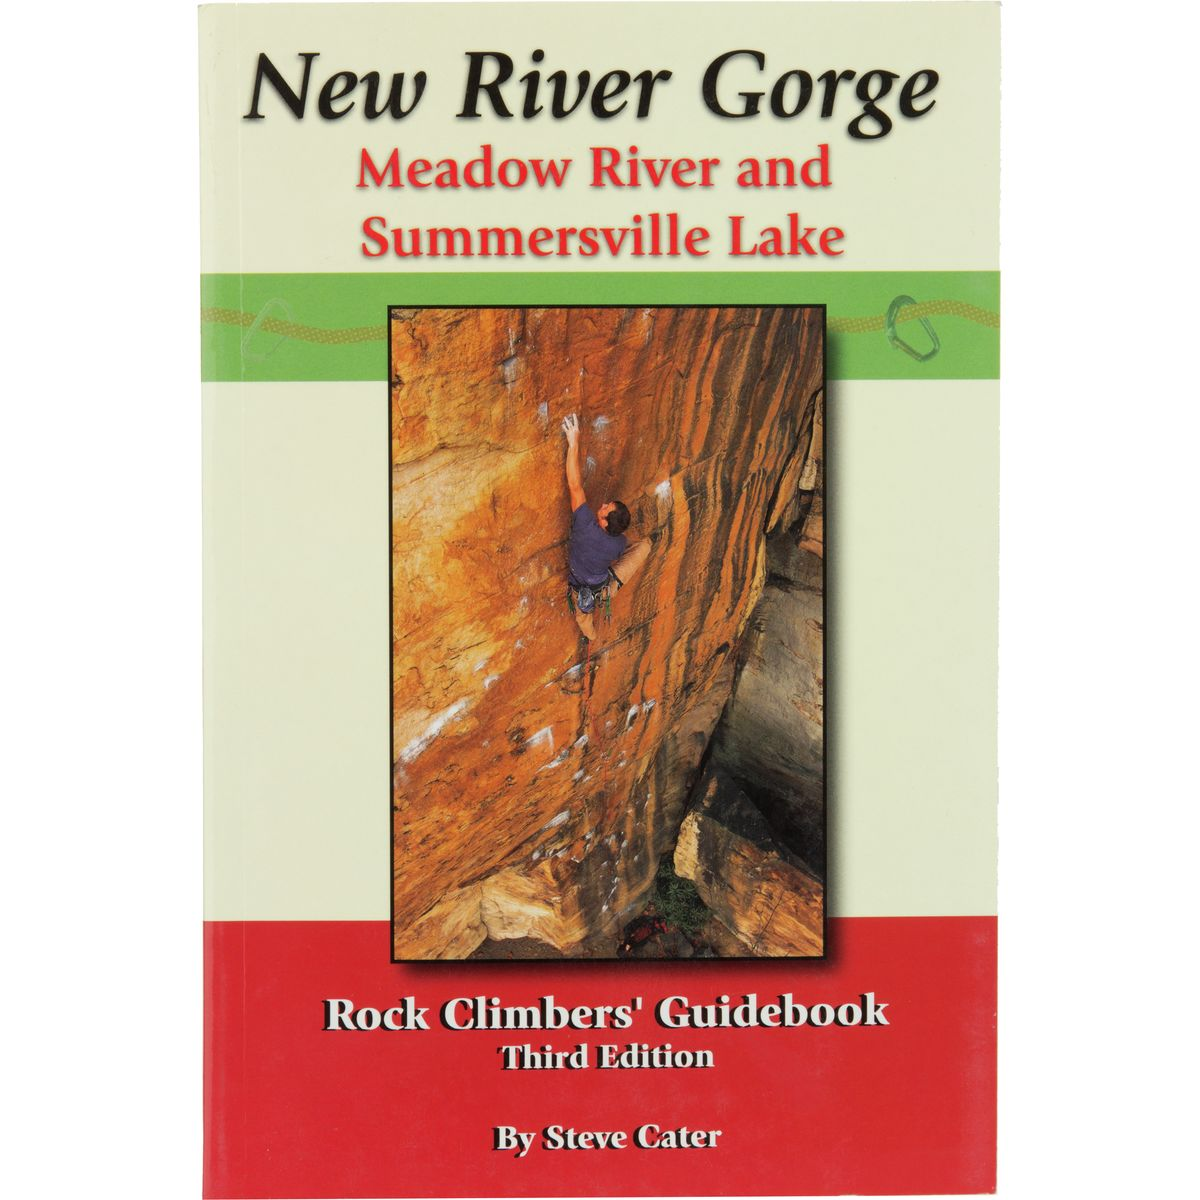 King Coal Propaganda Publishing New River Gorge Meadow River and Summersvill Lake Rock Climbers' Guidebook